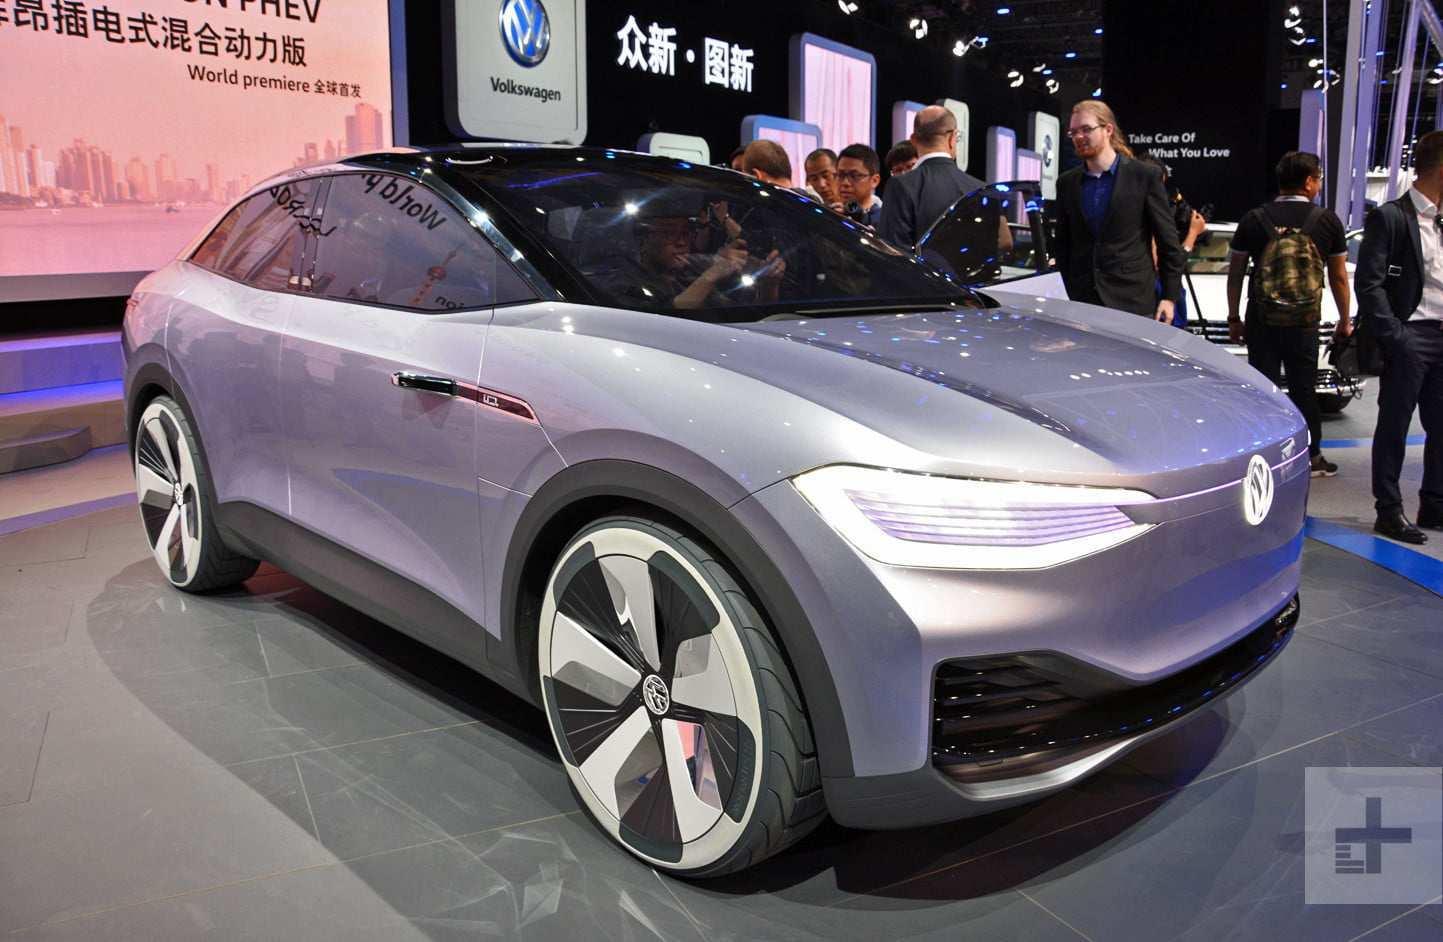 28 New Volkswagen 2019 Electric Pictures for Volkswagen 2019 Electric